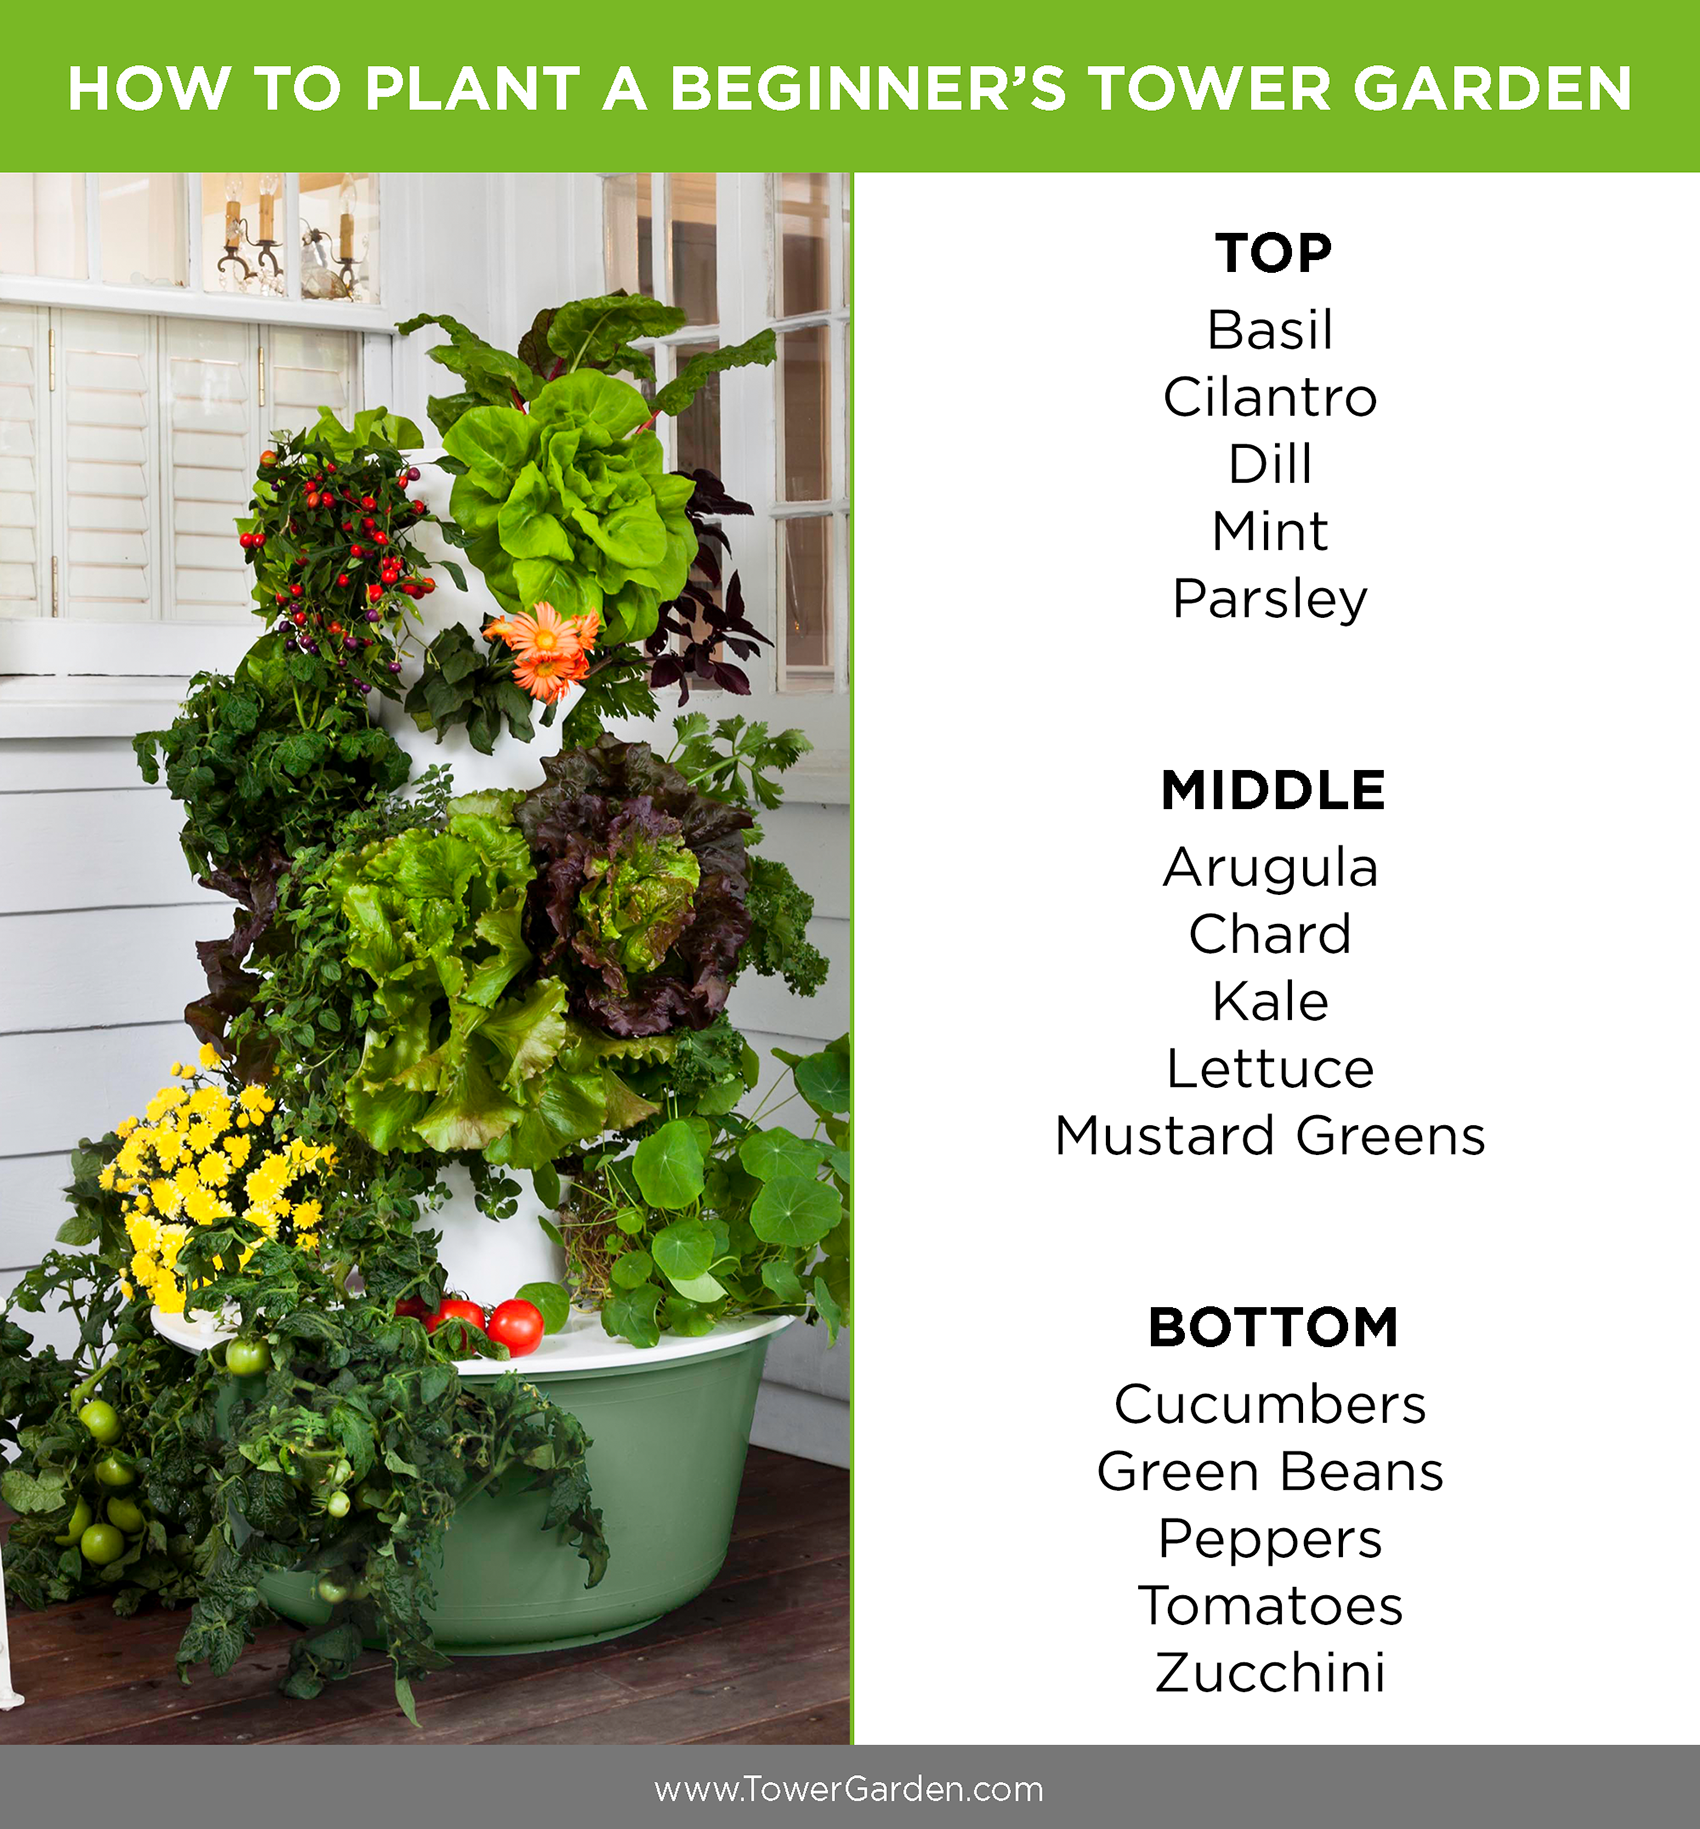 Beginner Tower Garden Planting Plan Aeroponic No Dirt Grow